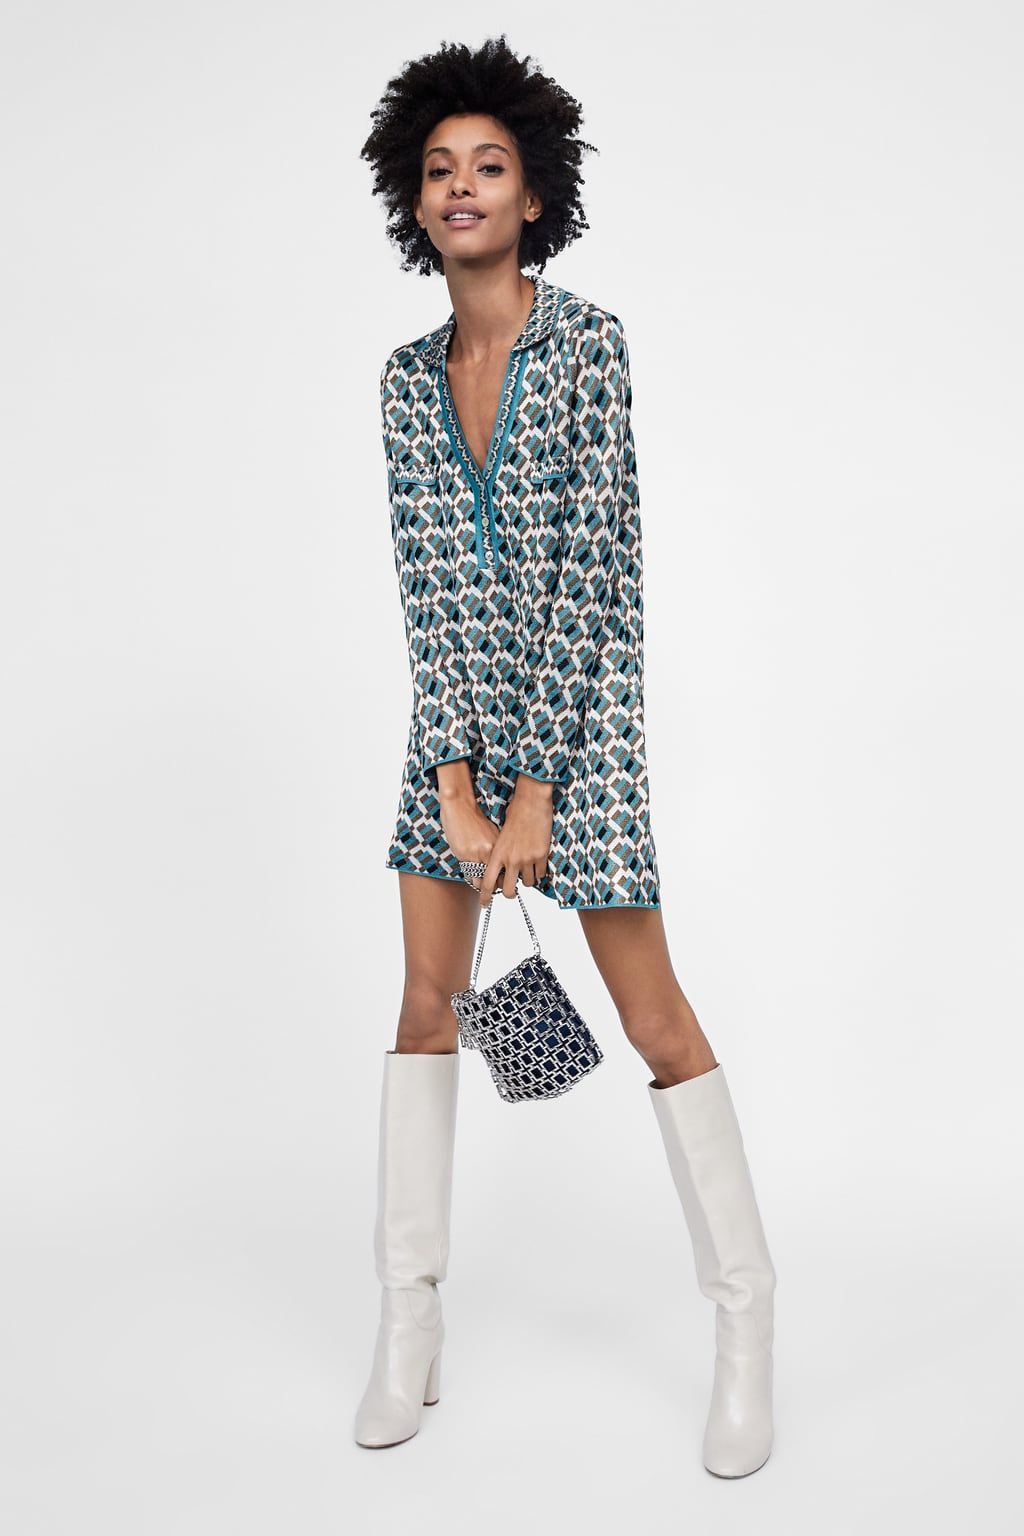 ca6b6b4aa09d Image 1 of JACQUARD KNIT DRESS from Zara | Dresses | Knit dress ...